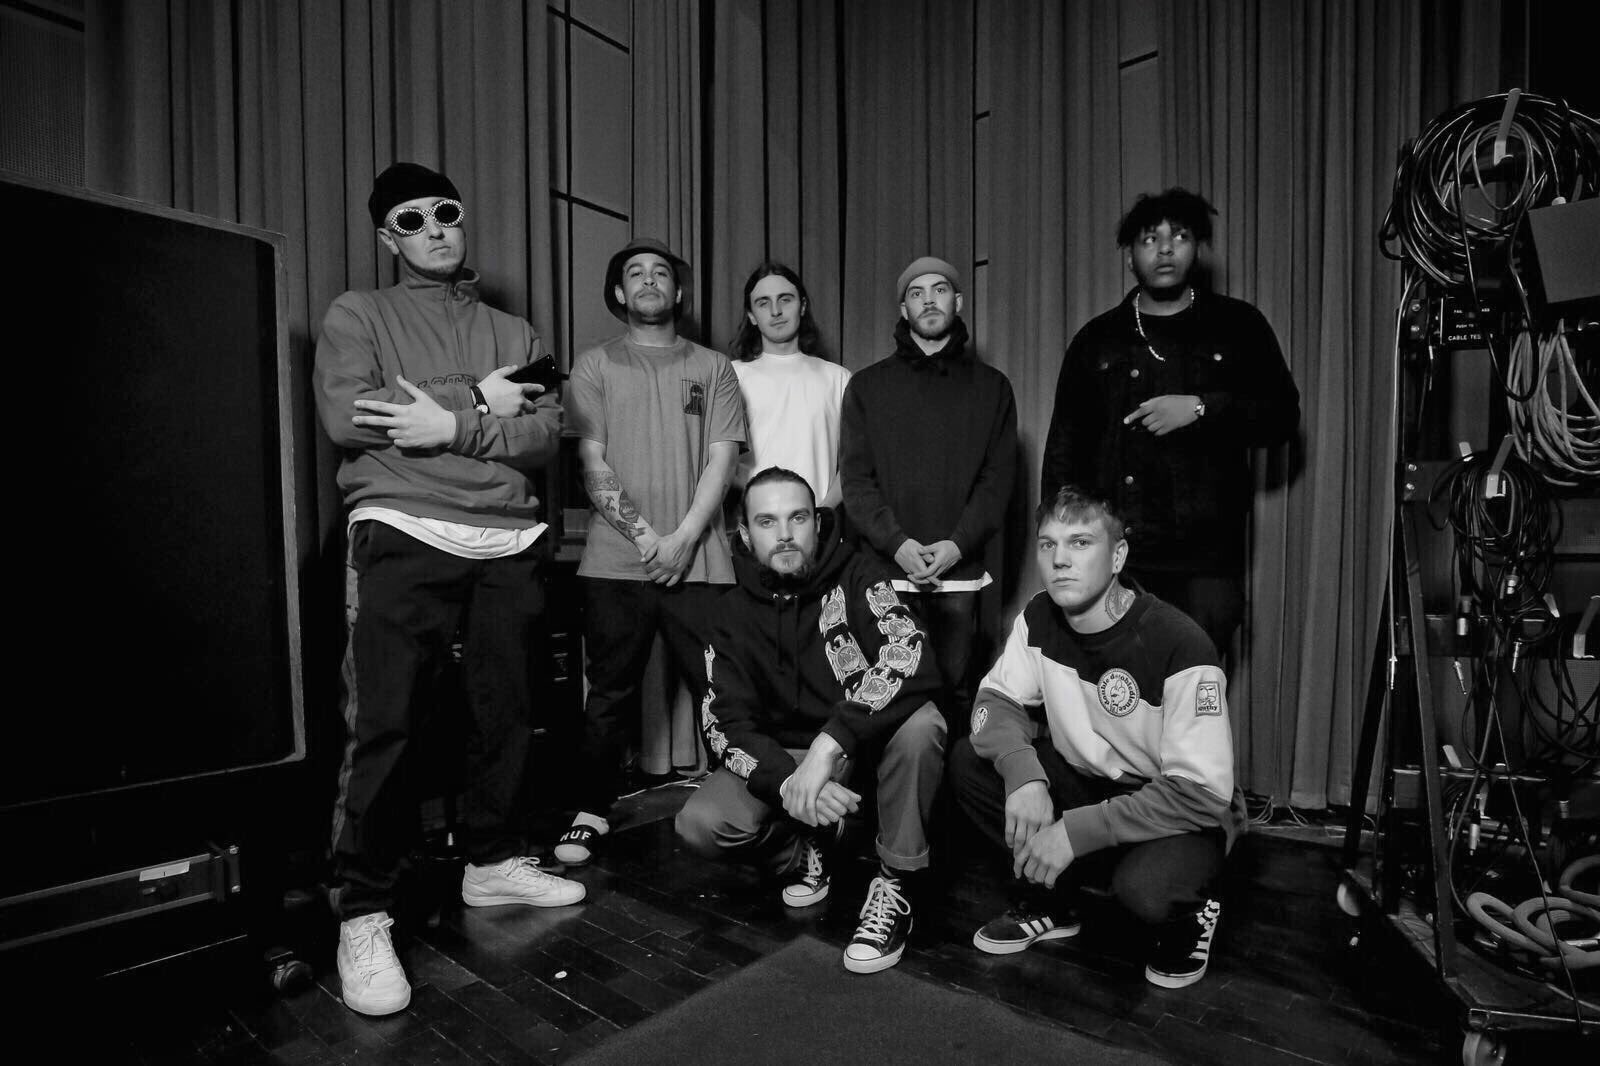 RT @AstroidBoys: TONIGHT // 10.30PM // @BBCR1  Maida Vale session with @huwstephens  TUNE IN!!! https://t.co/FTjZZVRnj7